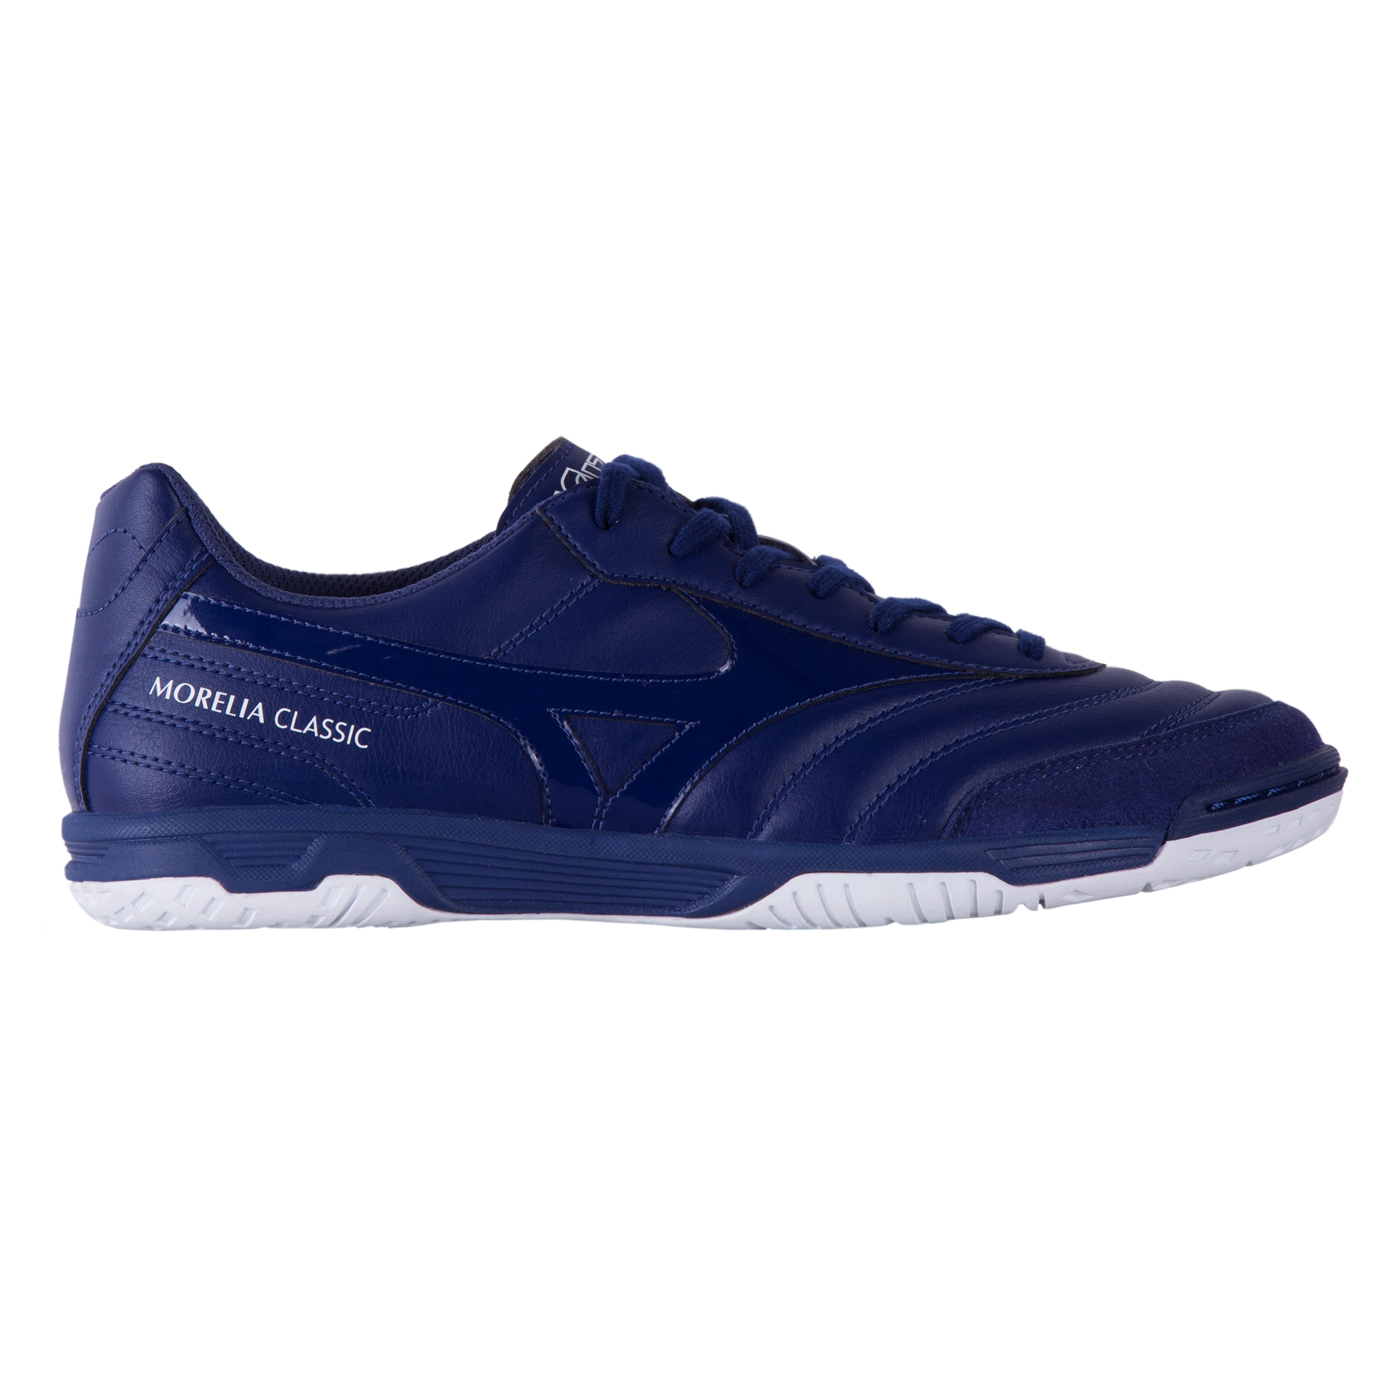 MORELIA SALA CLASSIC - BLUE DEPTHS/ BLUE DEPTHS